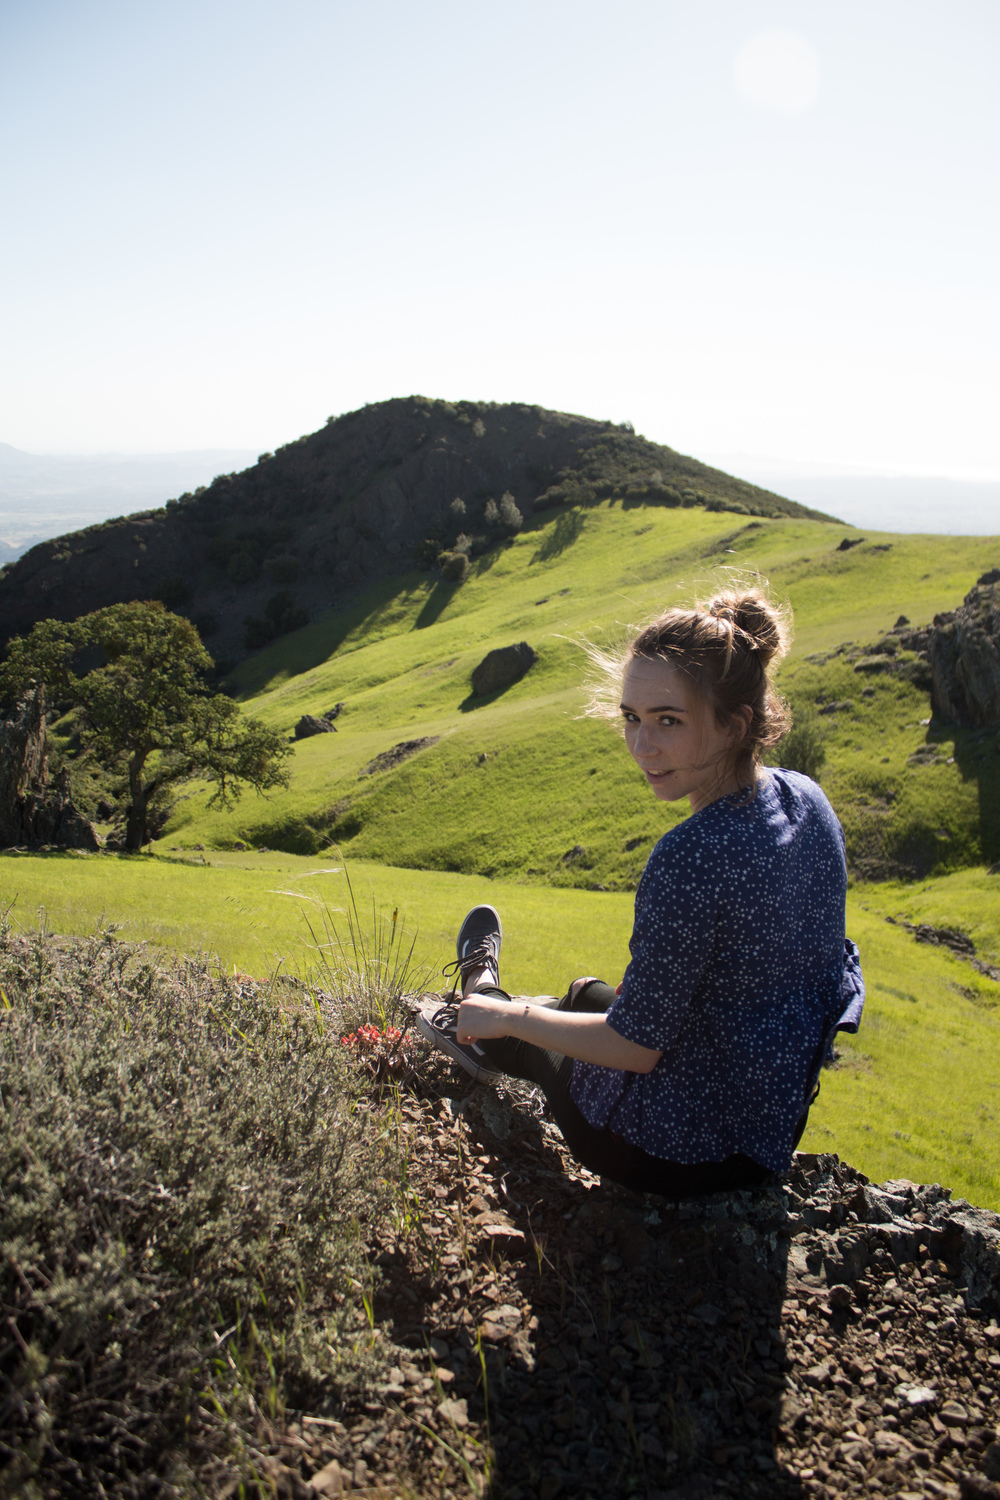 Avrie and I discovered a new place that just made it on our favorites list. We ventured out to Figueroa Mountain outside of Los Olivos, CA after seeing a few photos taken there on social media. We'll definitely be back soon. PS that's a lady bug that landed on her arm.